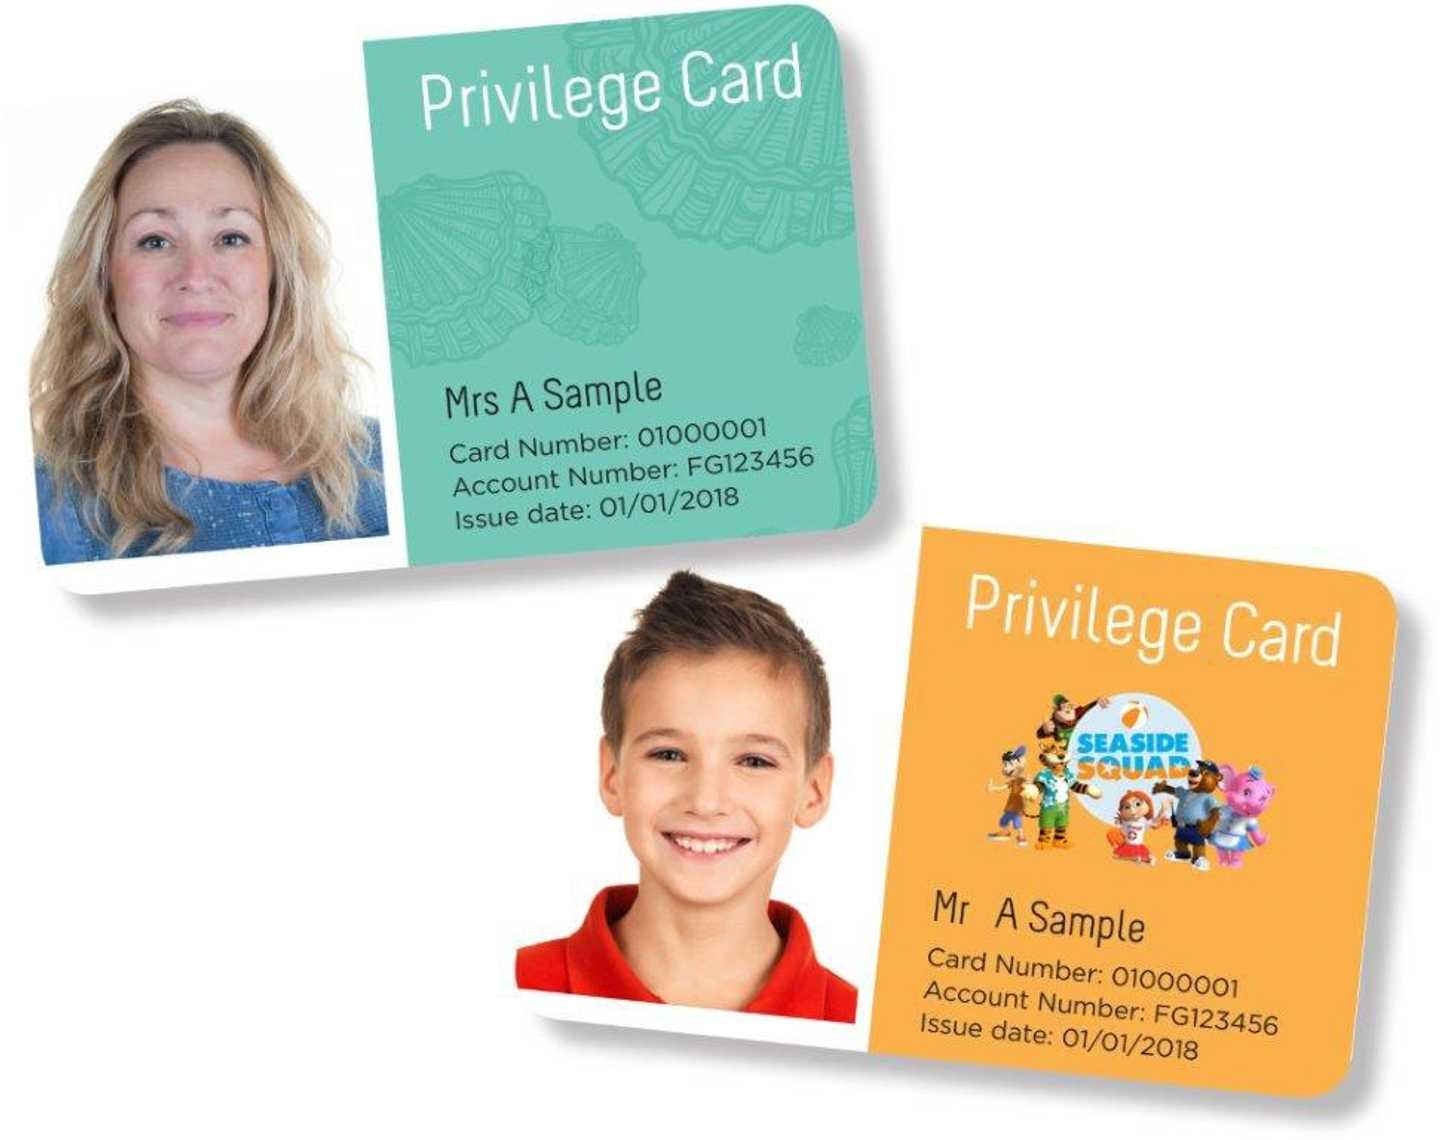 An example of our 2018 Privilege Cards, including owners picture, name, card number, account number and issue date